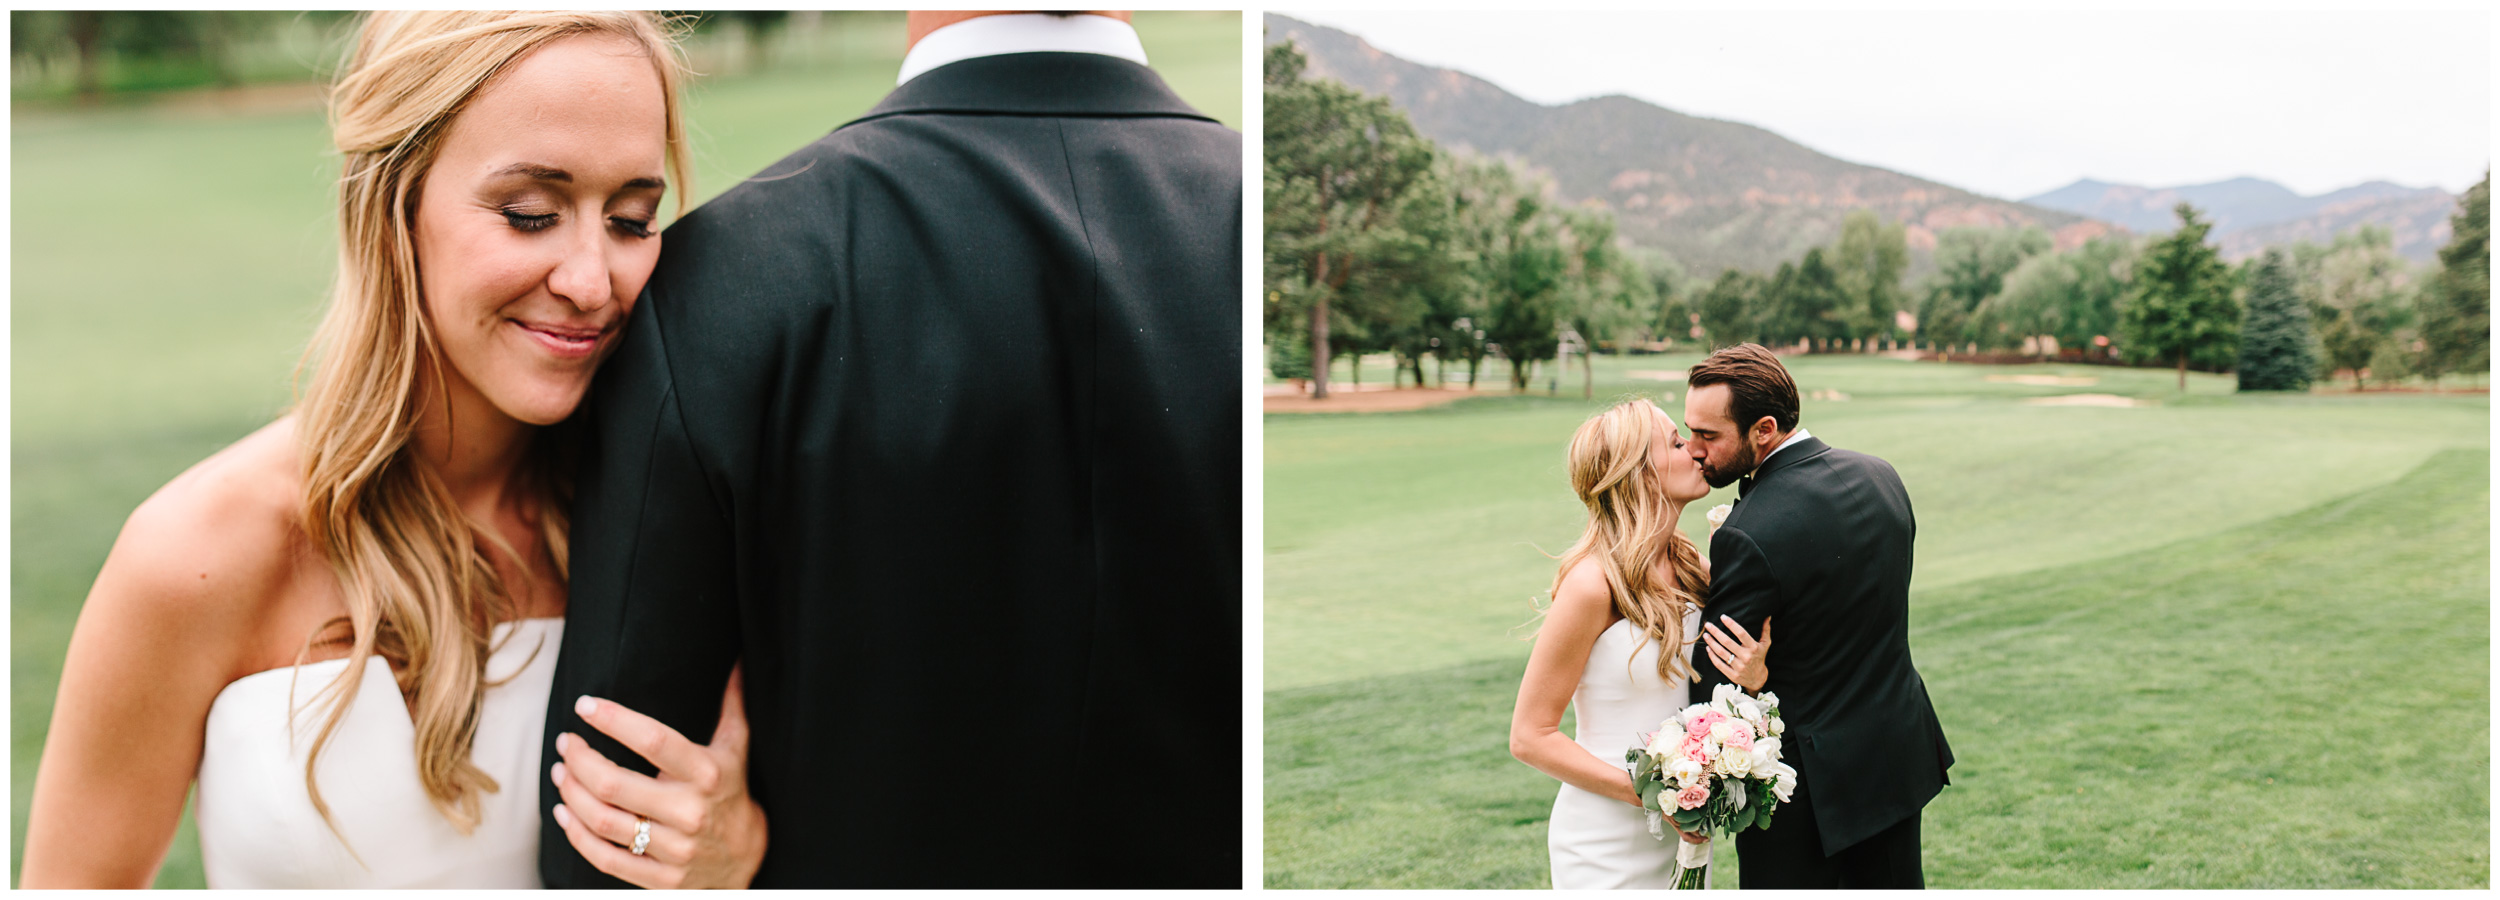 broadmoor_wedding_51.jpg